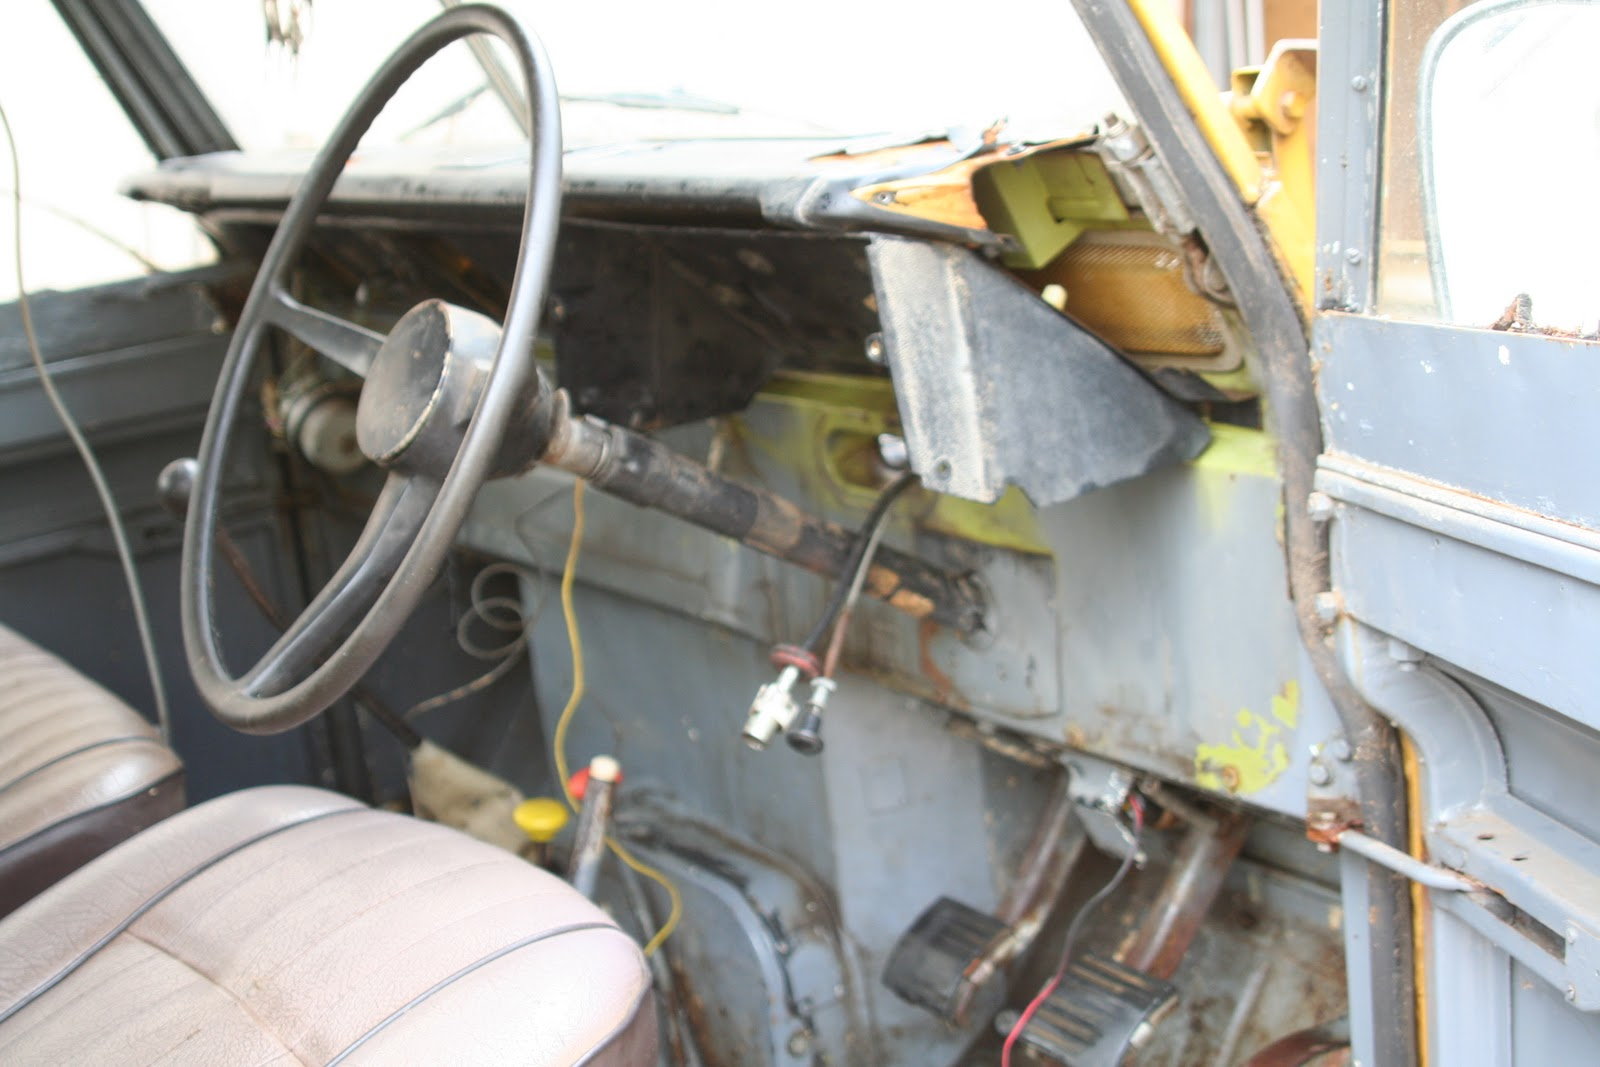 Rebuilding A Legendary Land Rover Series 3 Iii Wiring The Dash Completely Removed And Lying On Floor Next To Vehicle